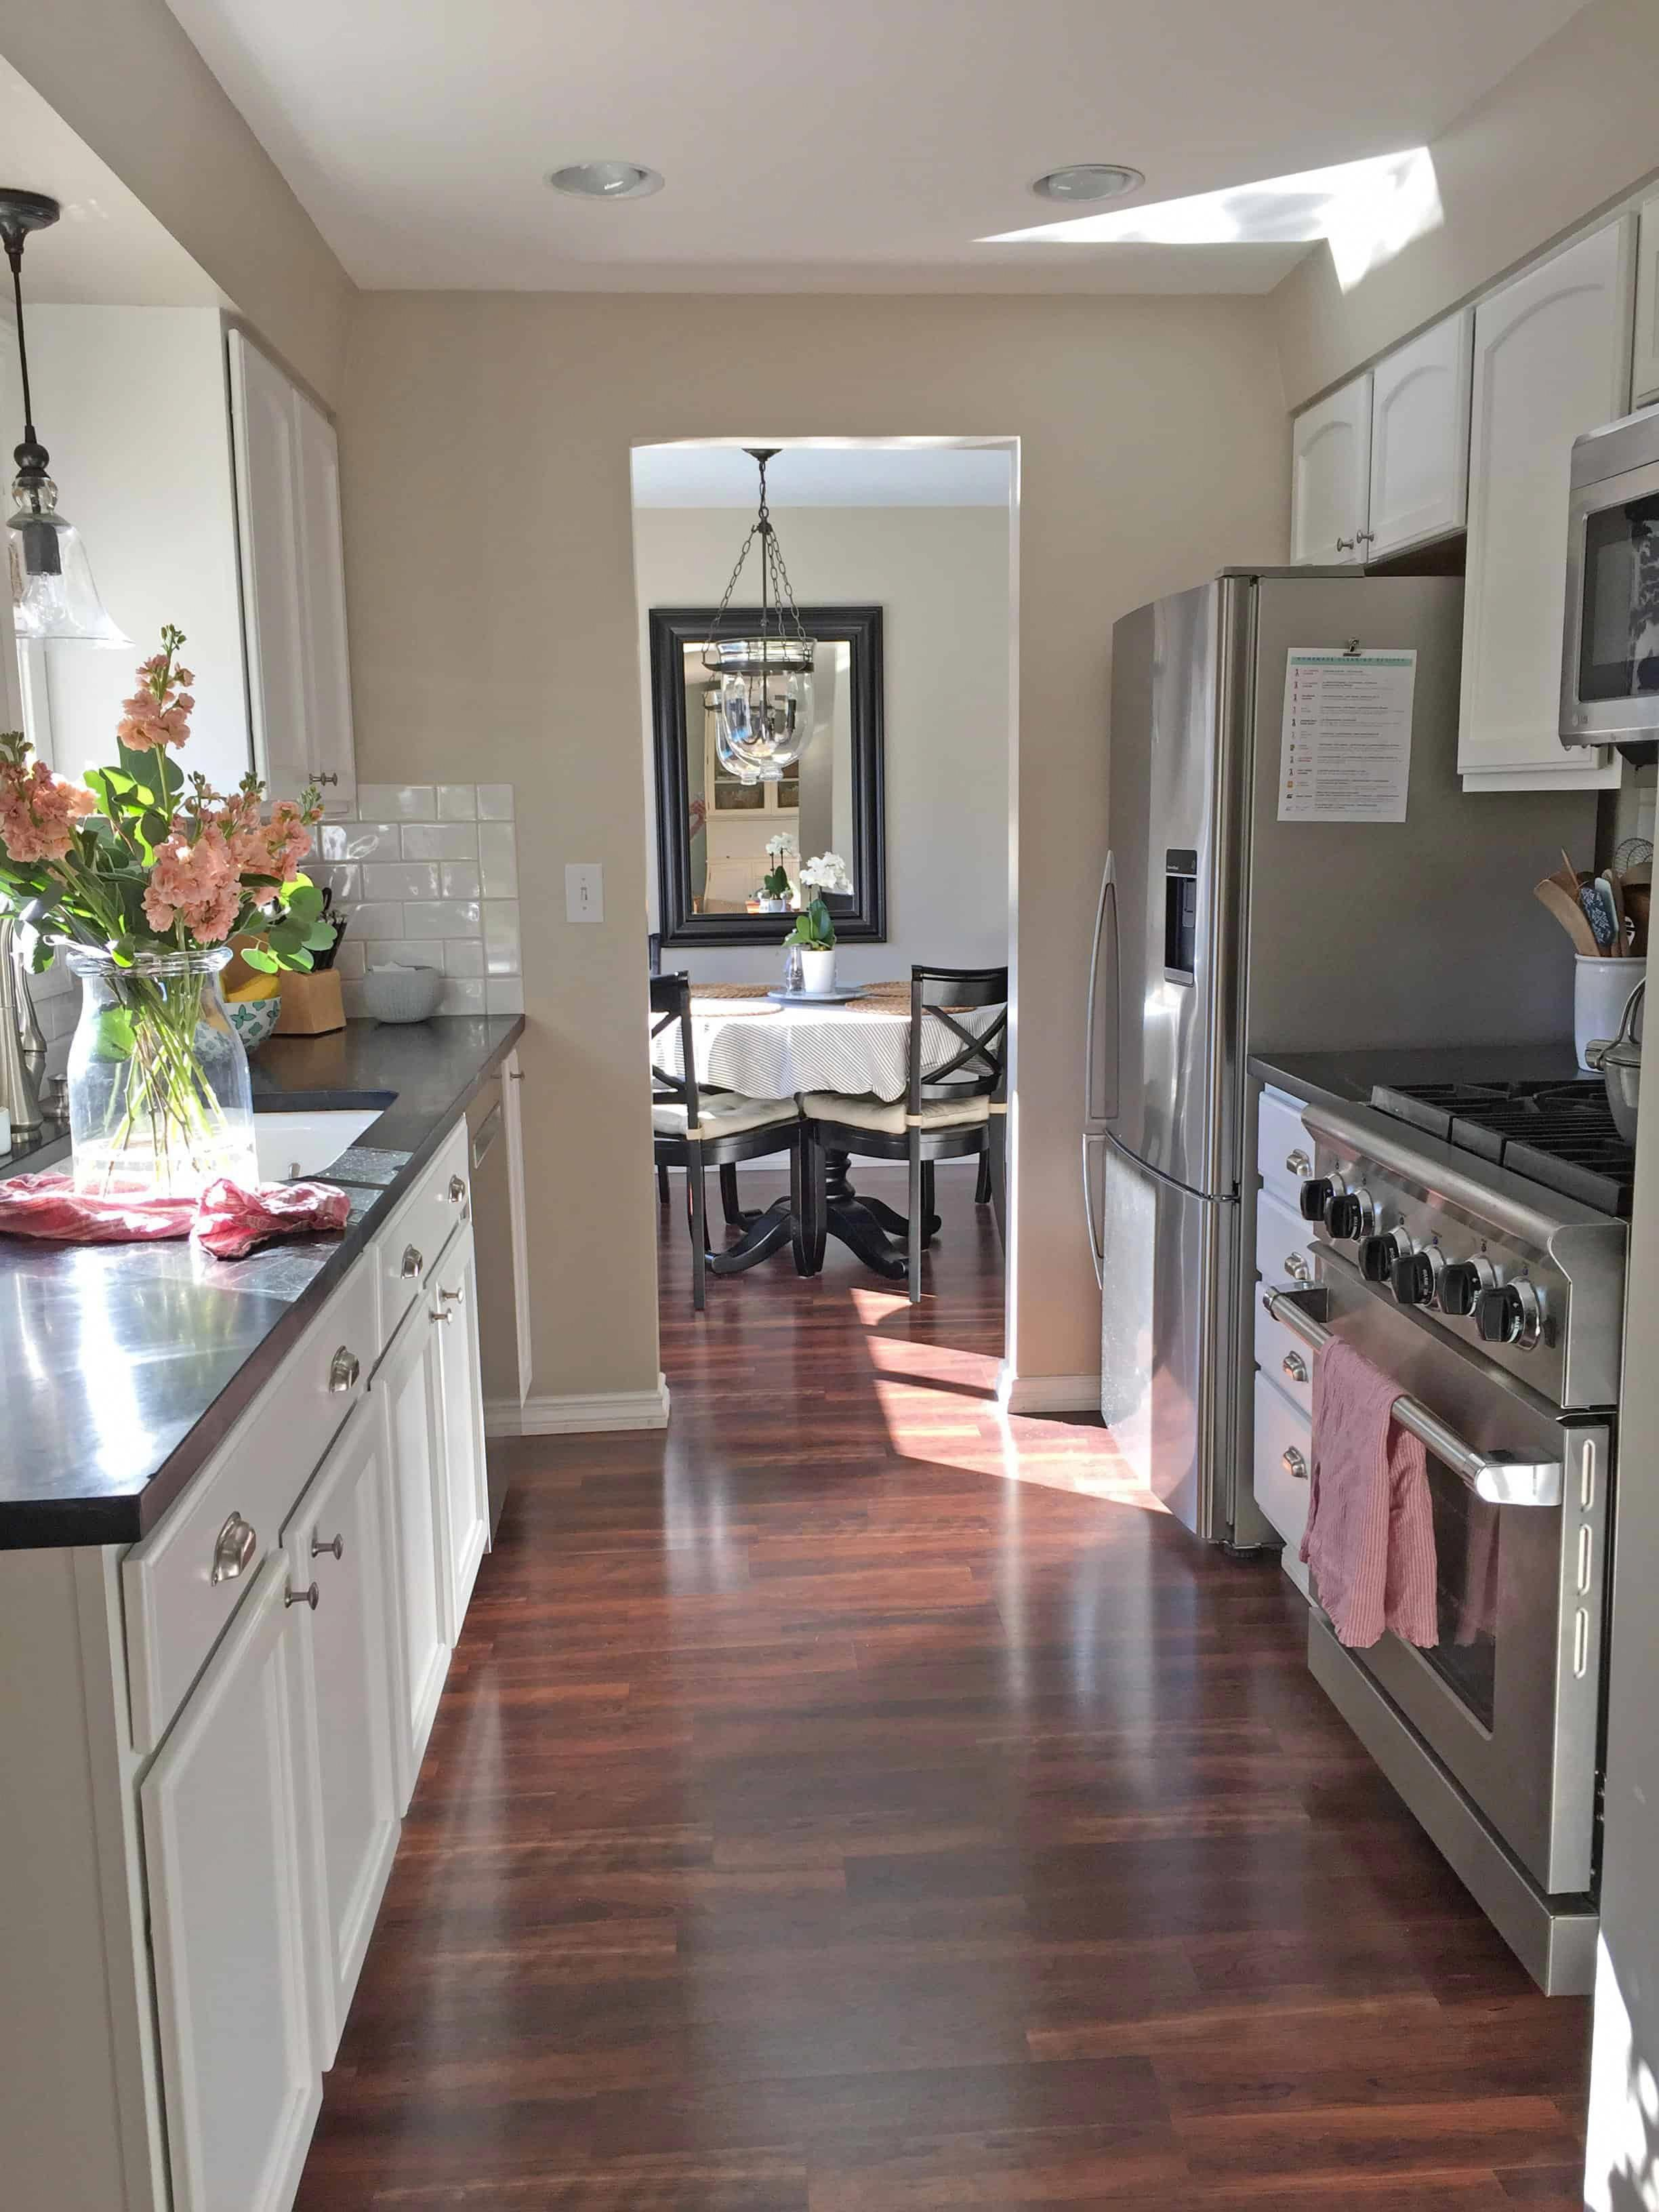 Consider This Vital Photo And Also Check Out Today Knowledge On 10x10 Kitchen Remodel Galley Kitchen Design Kitchen Design Small Kitchen Remodel Small